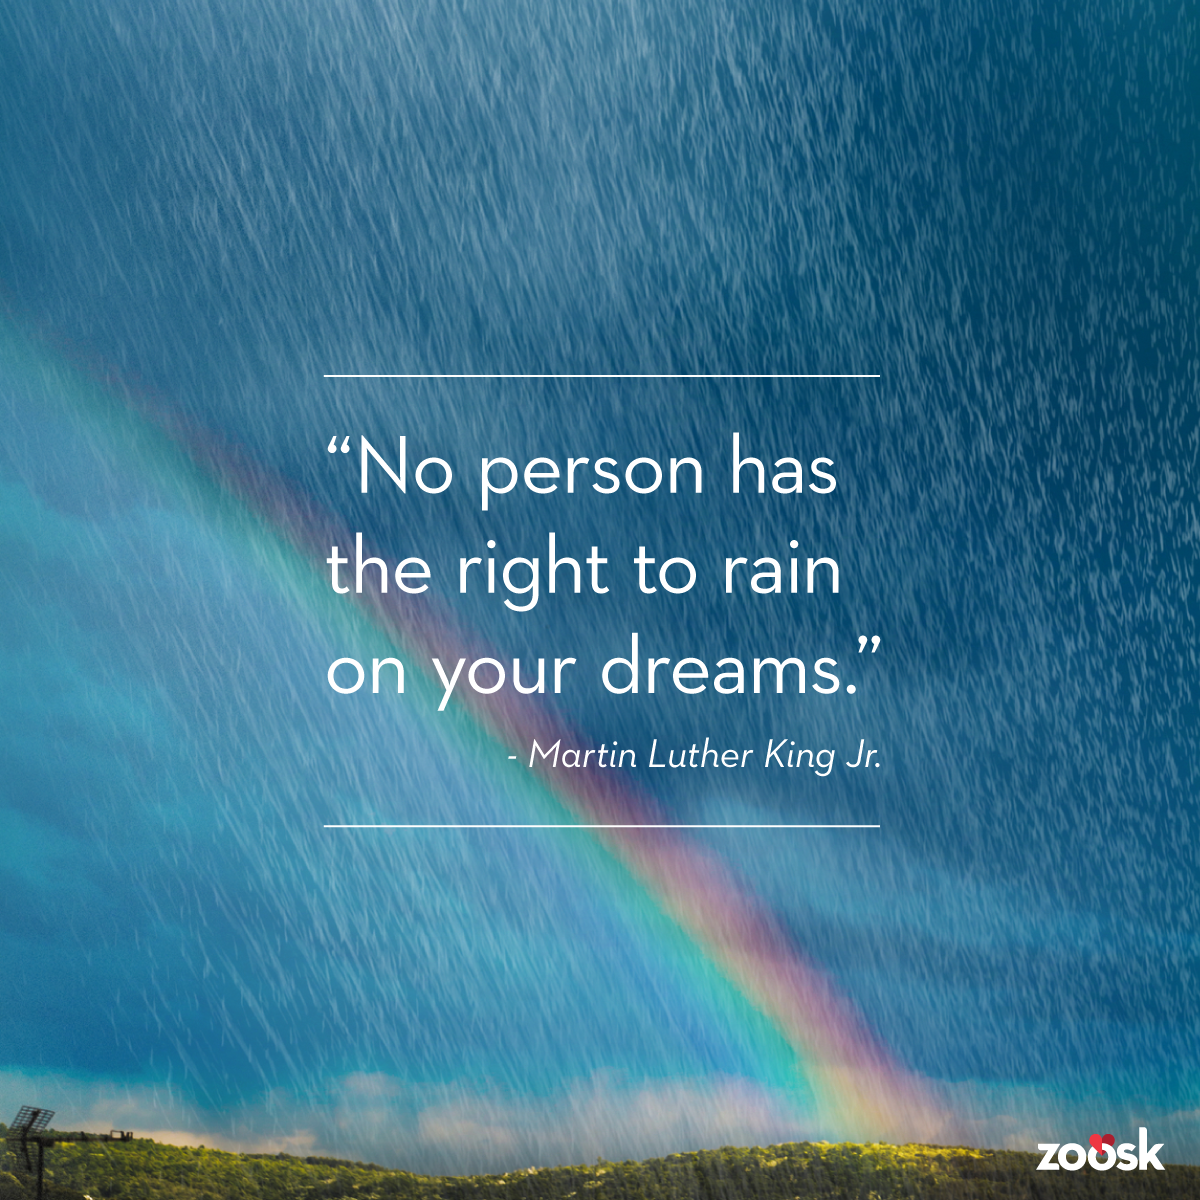 Breakup Messages: No person has the right to rain on your dreams.